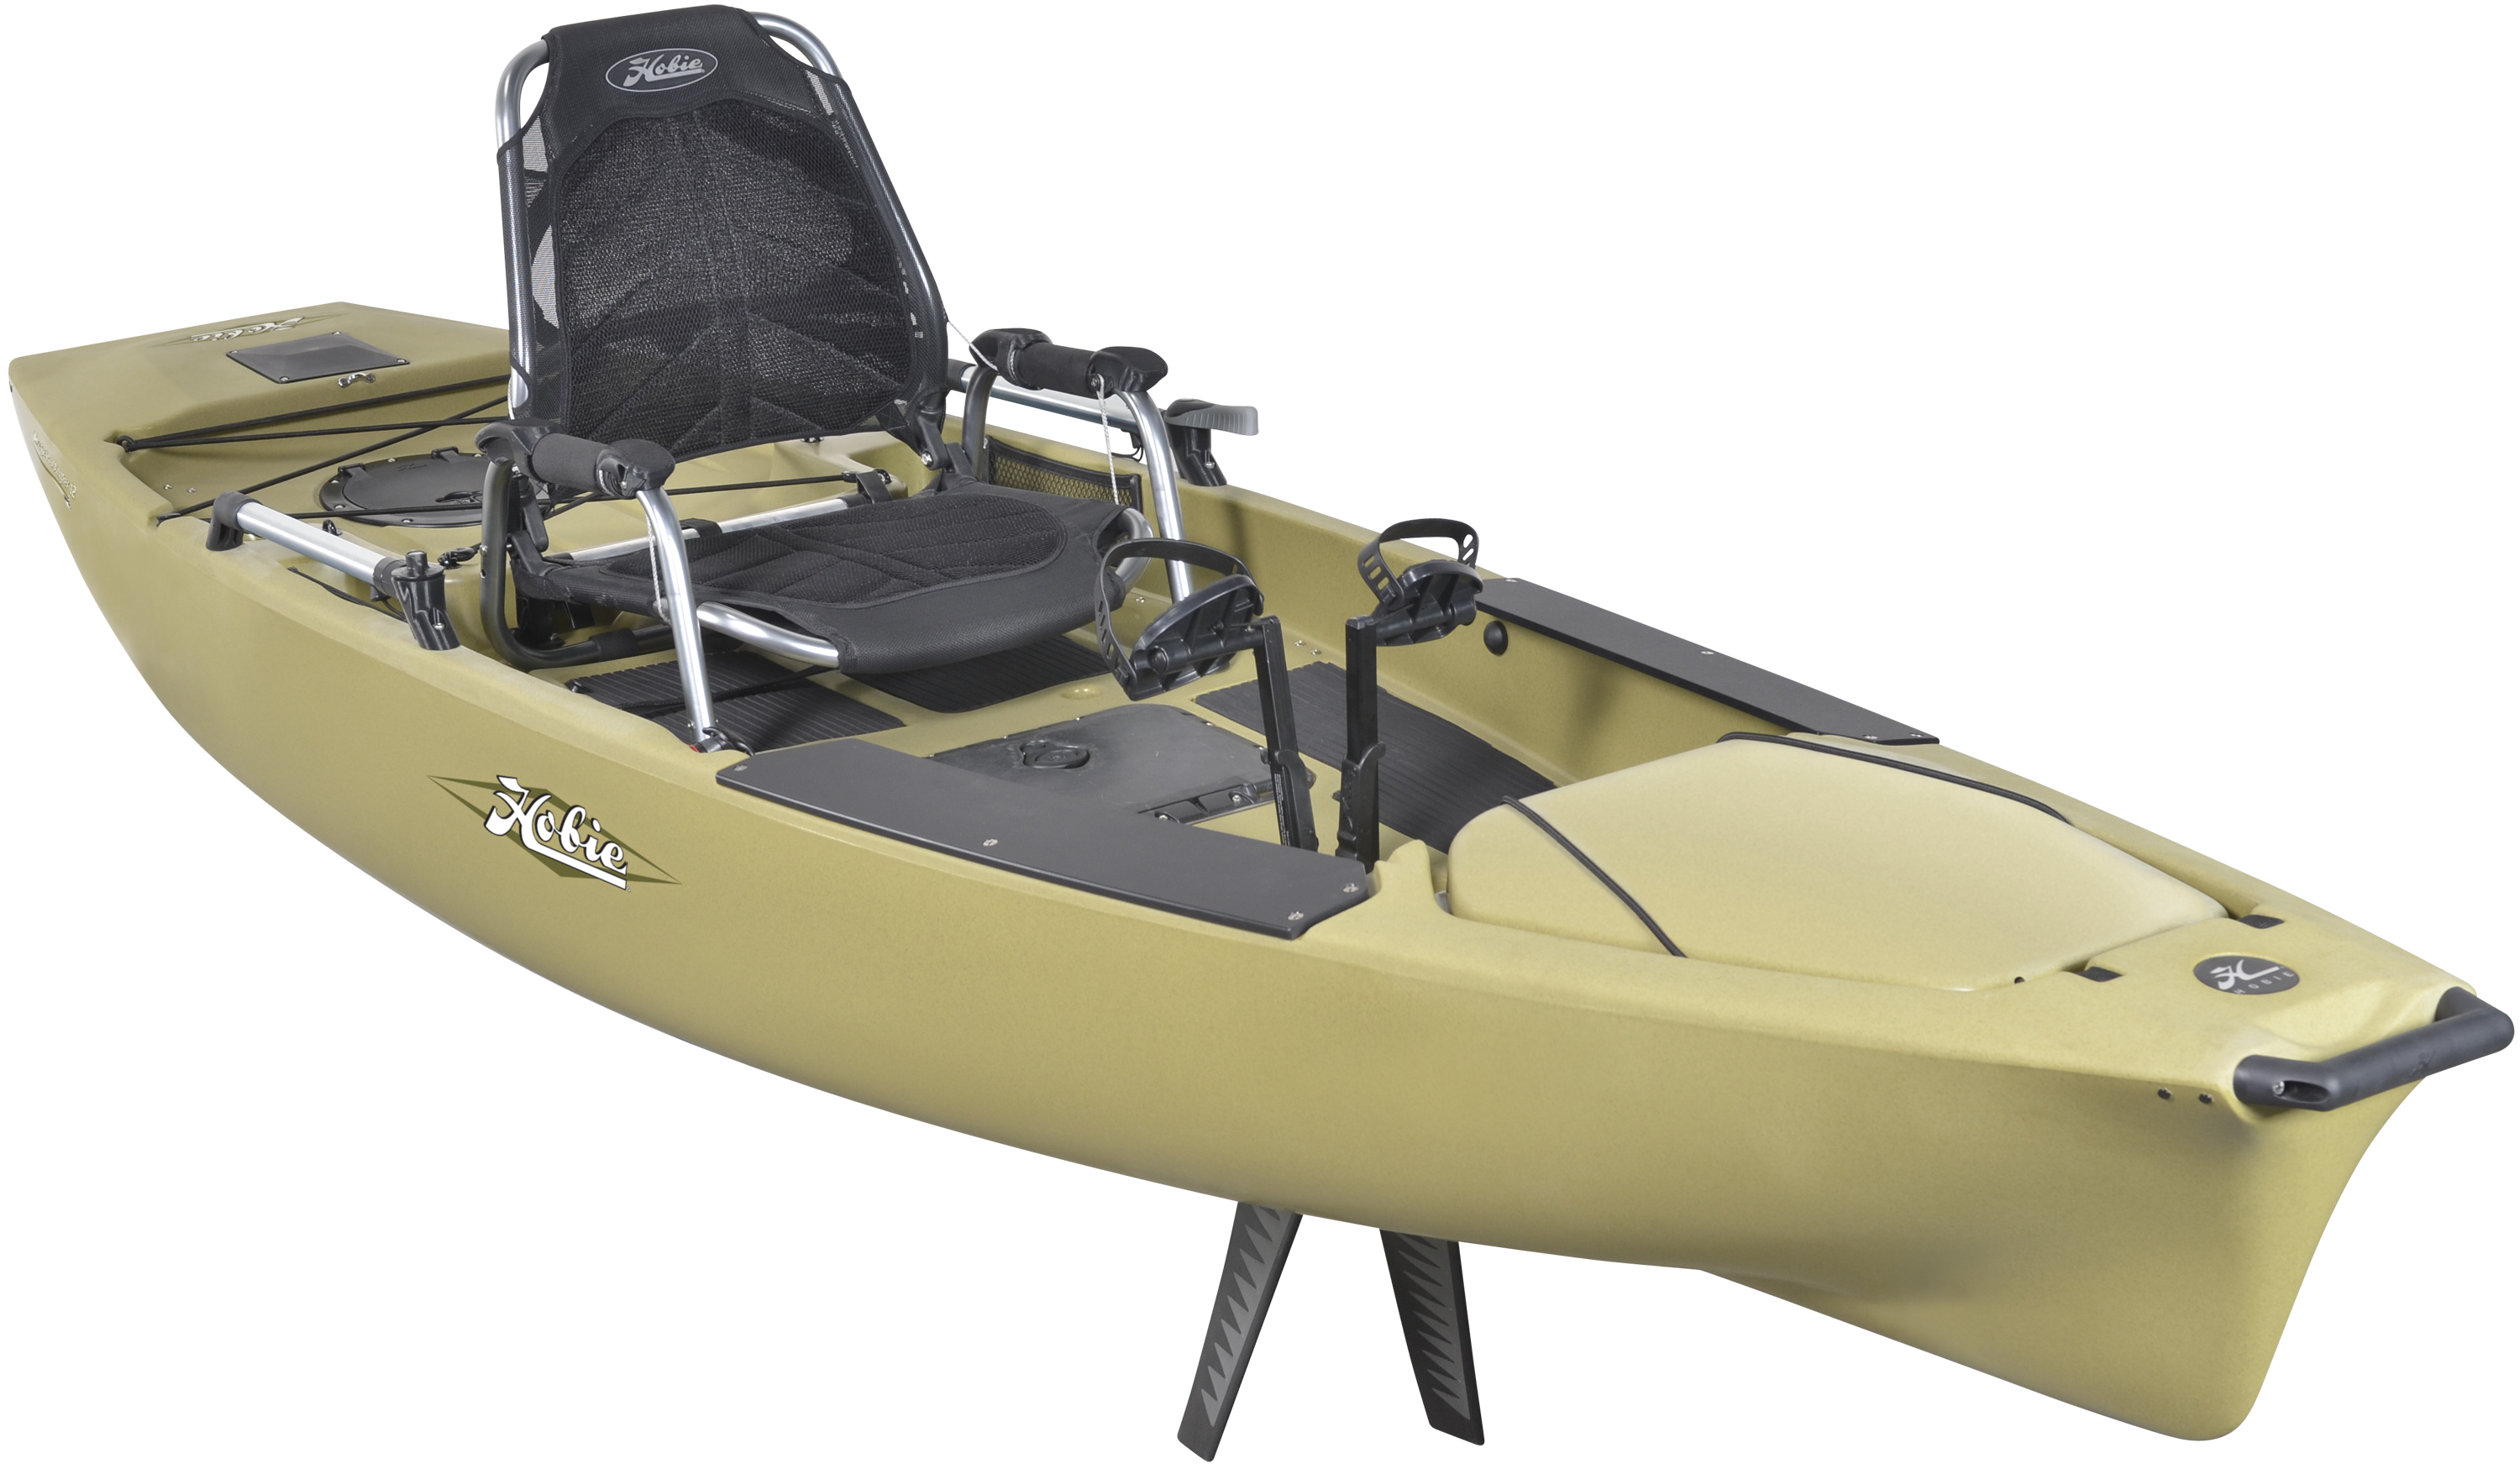 Hobie pro angler 12 the water shed for Fishing rafts for sale